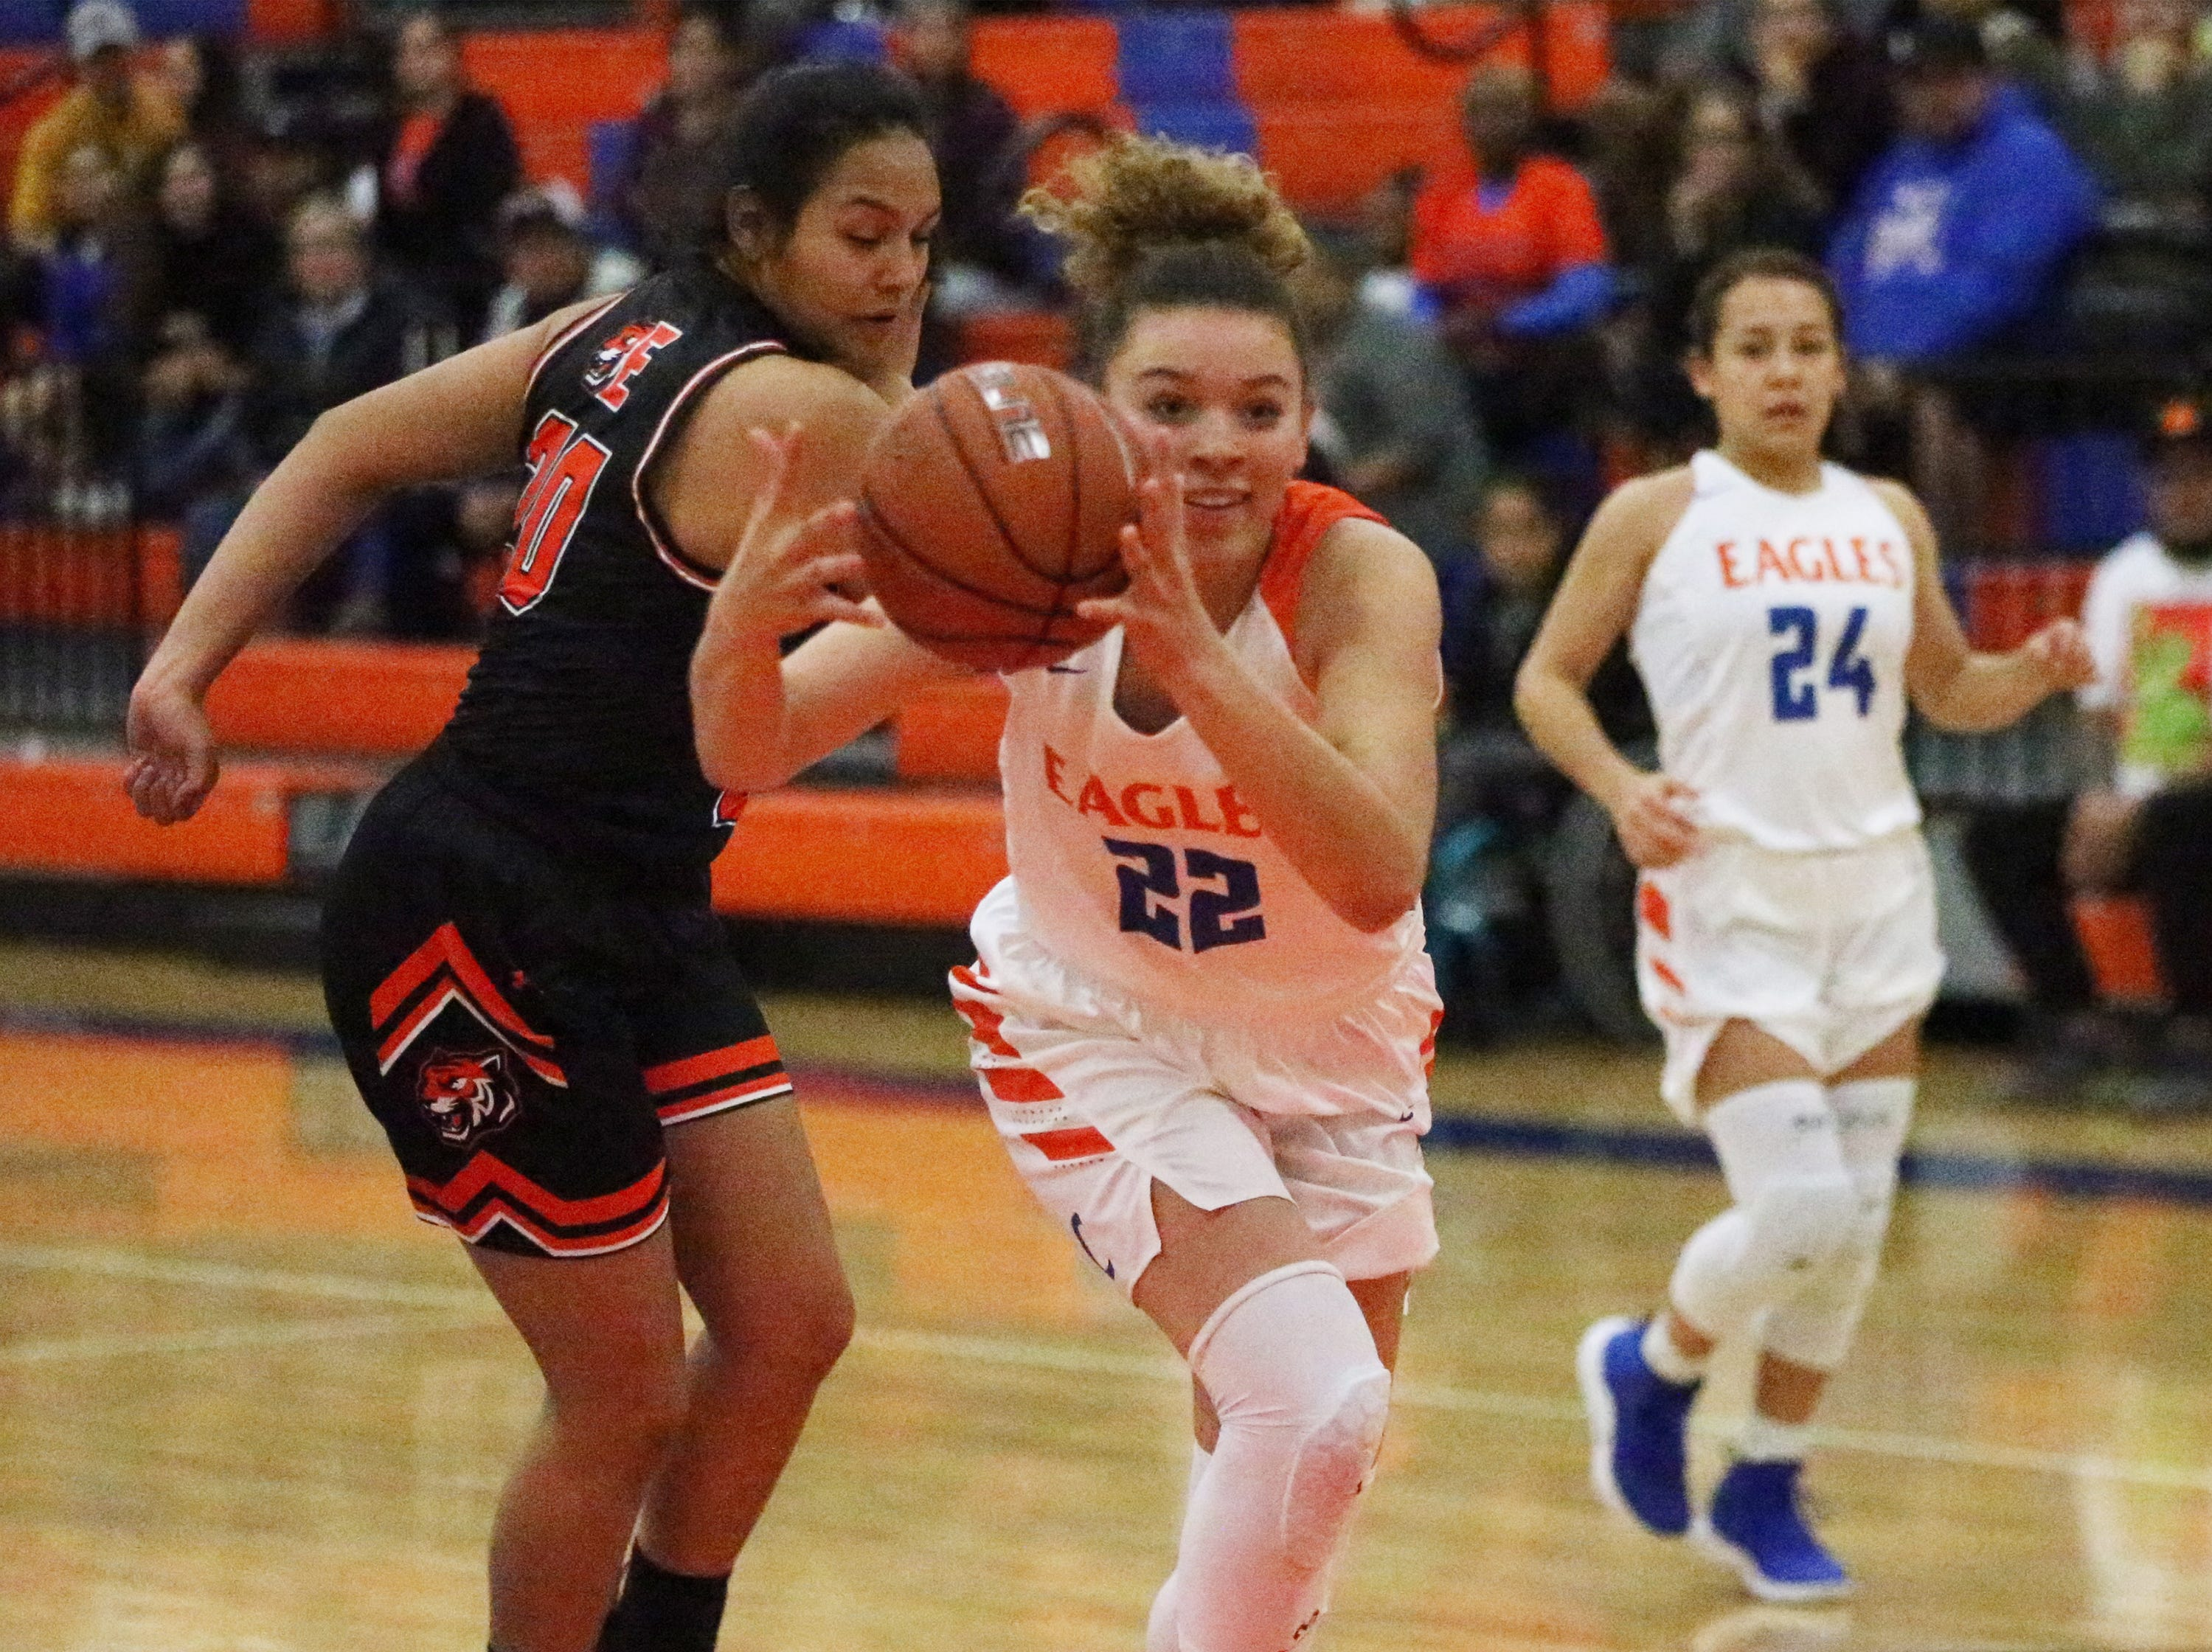 Sadi Clemons, 22, of Canutillo drives to the basket against El Paso High Tuesday night.